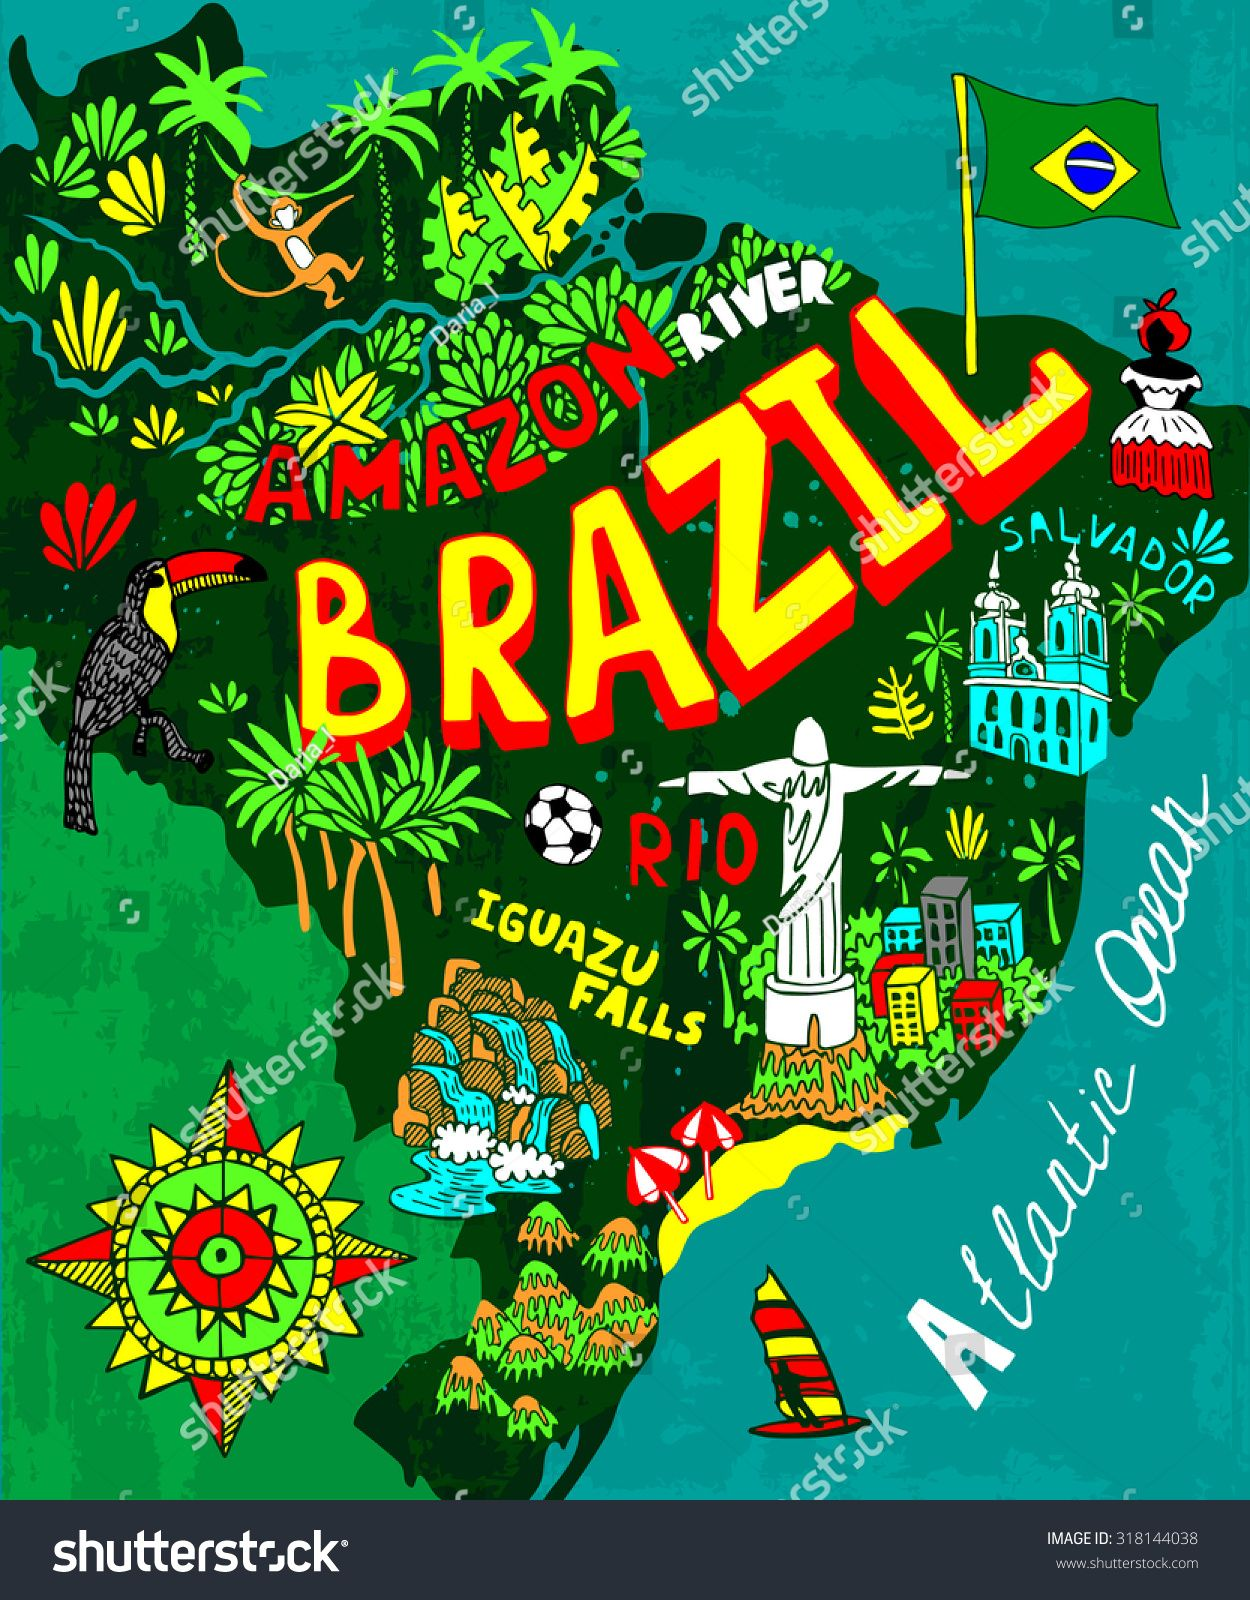 Illustrated map of Brazil | Brasil | Brazil art, Brazil, Brazil country